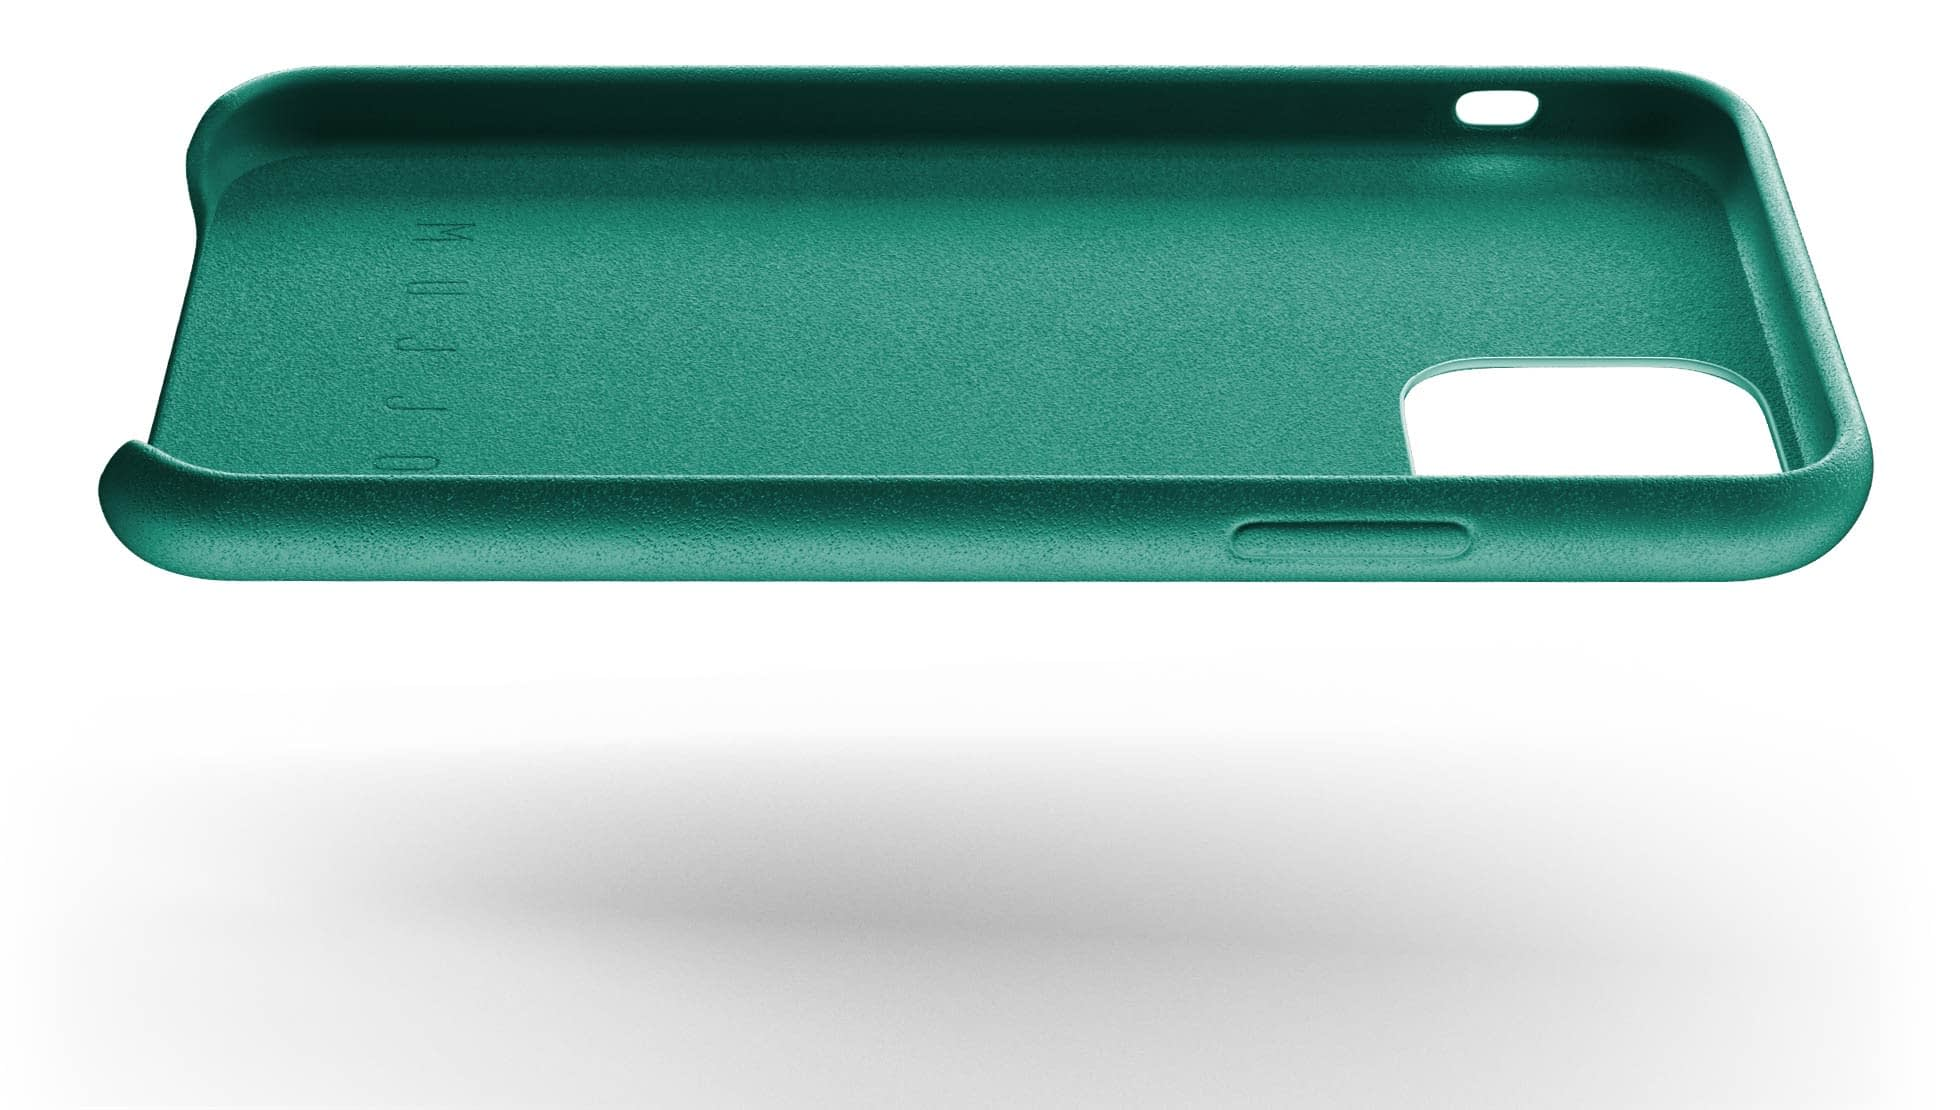 full leather case for iphone 11 pro max alpine green 004